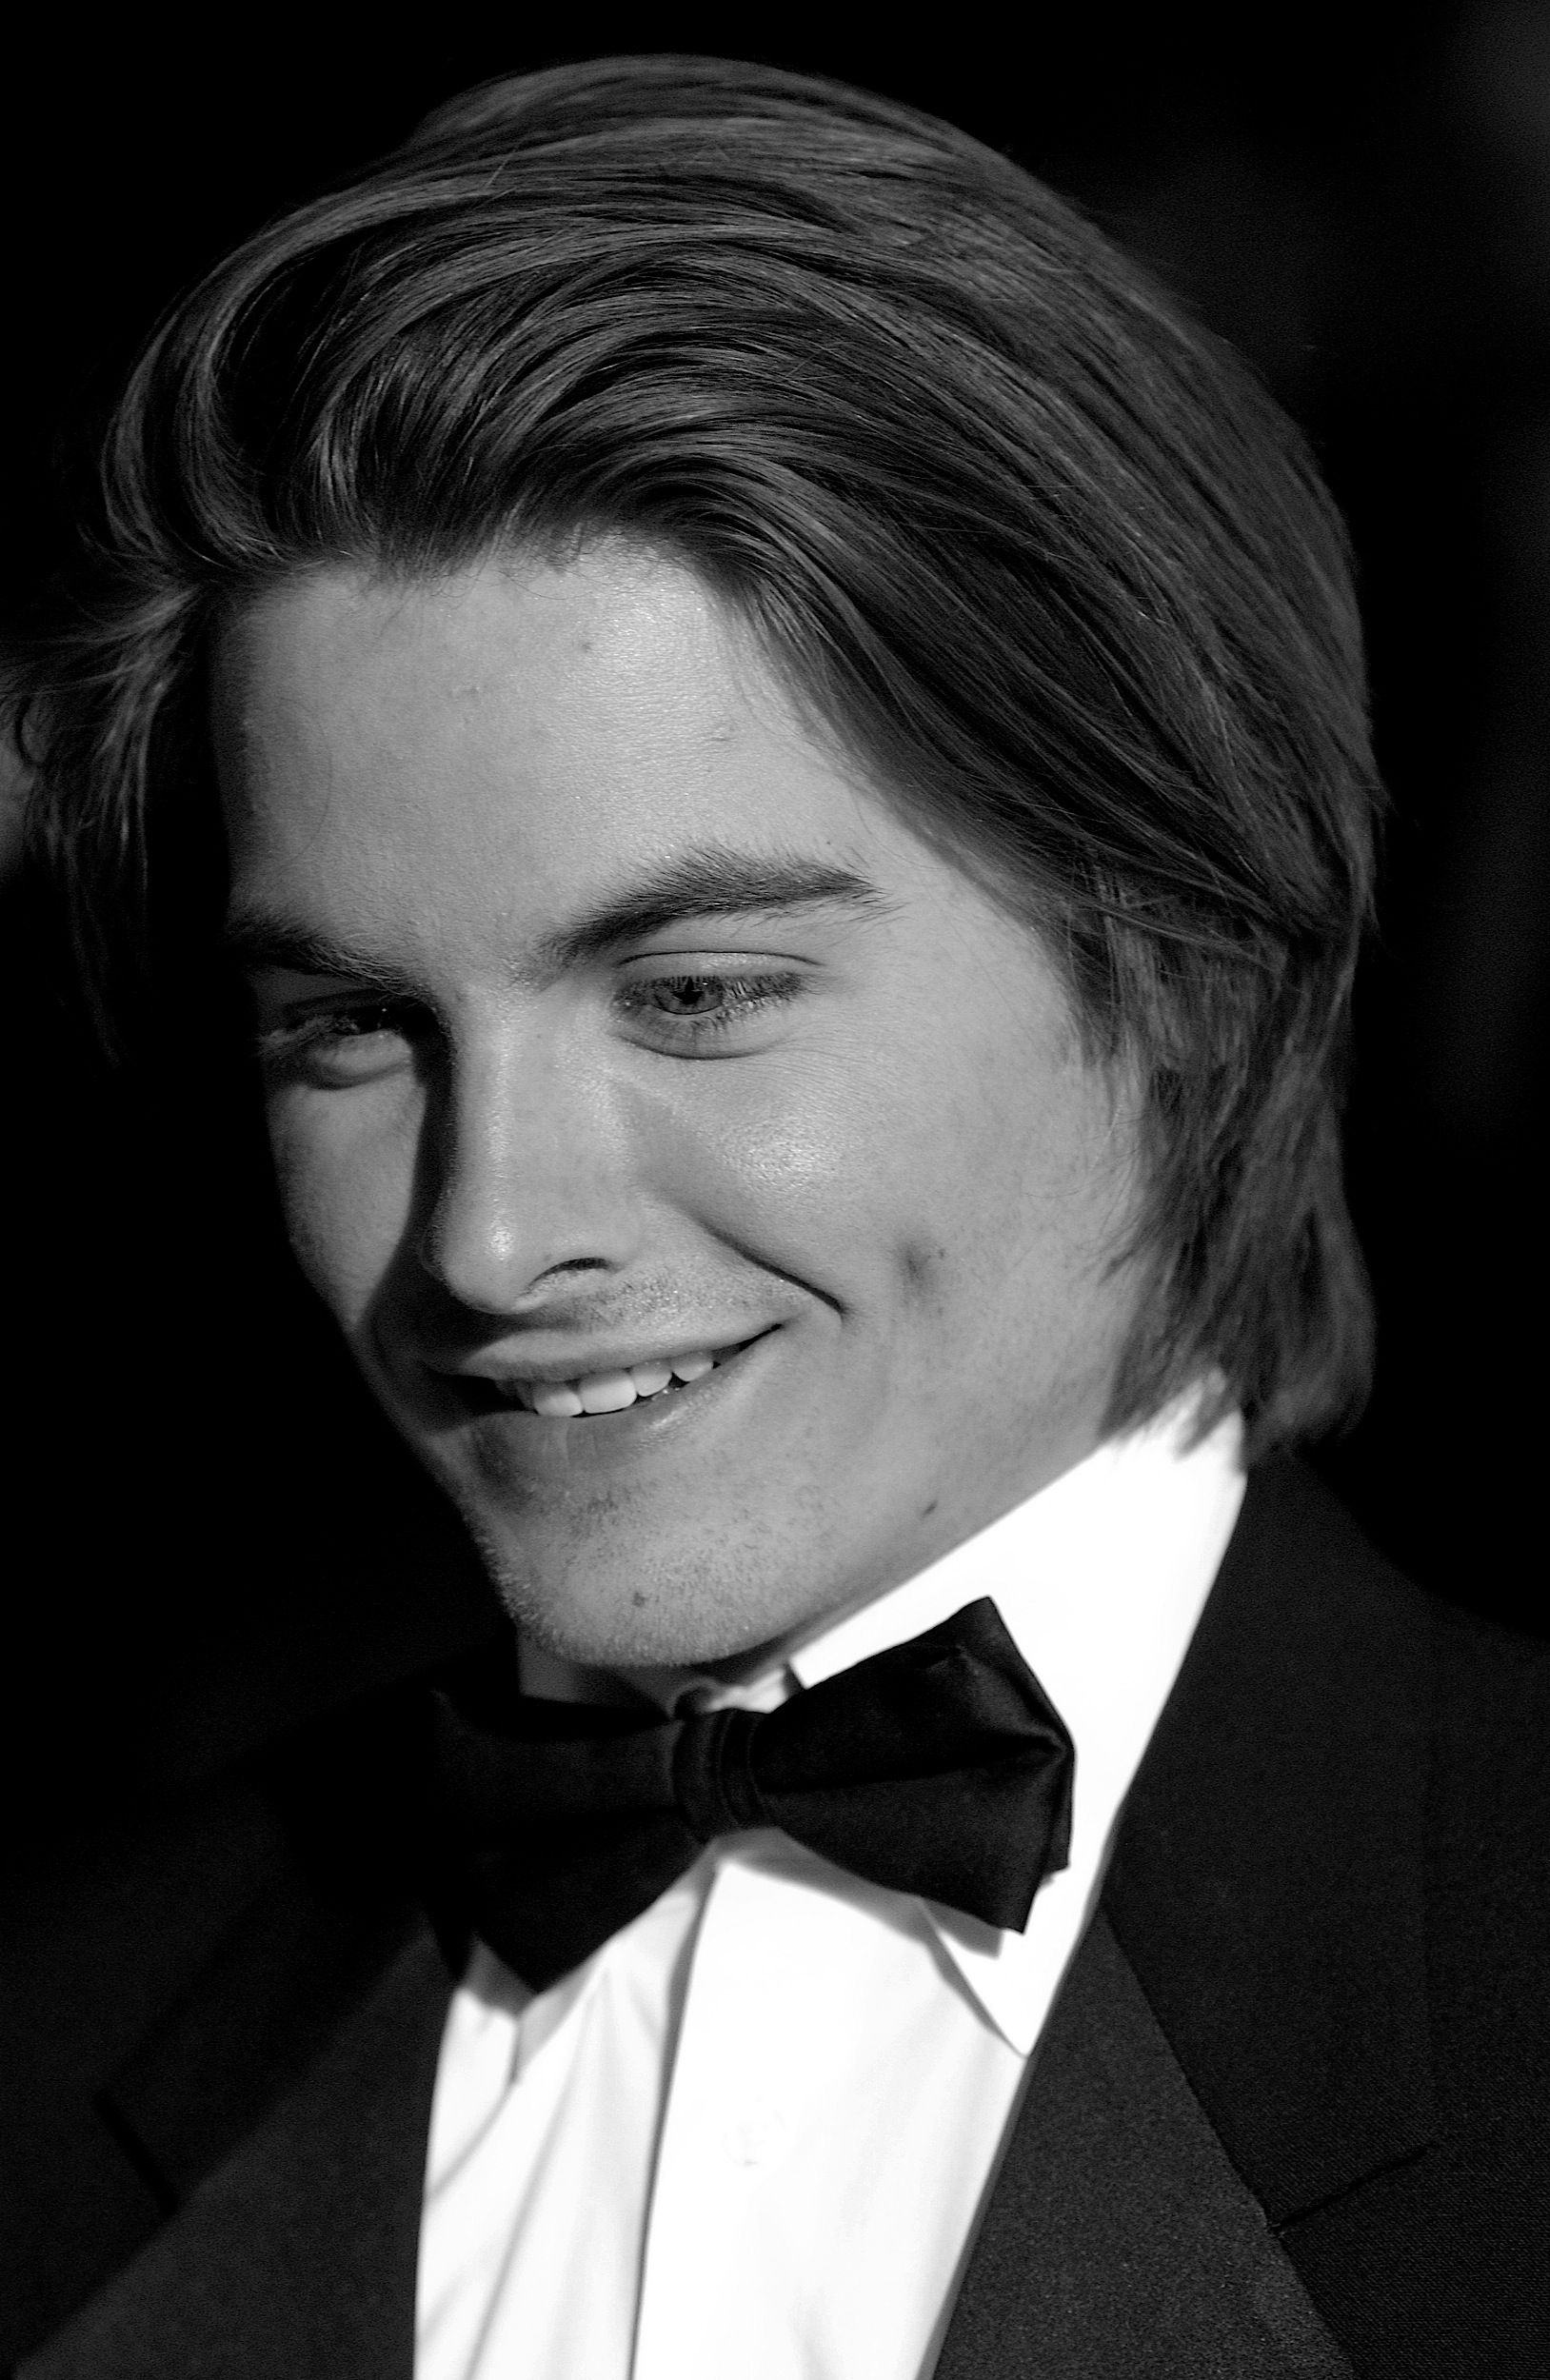 pictures Kevin Zegers